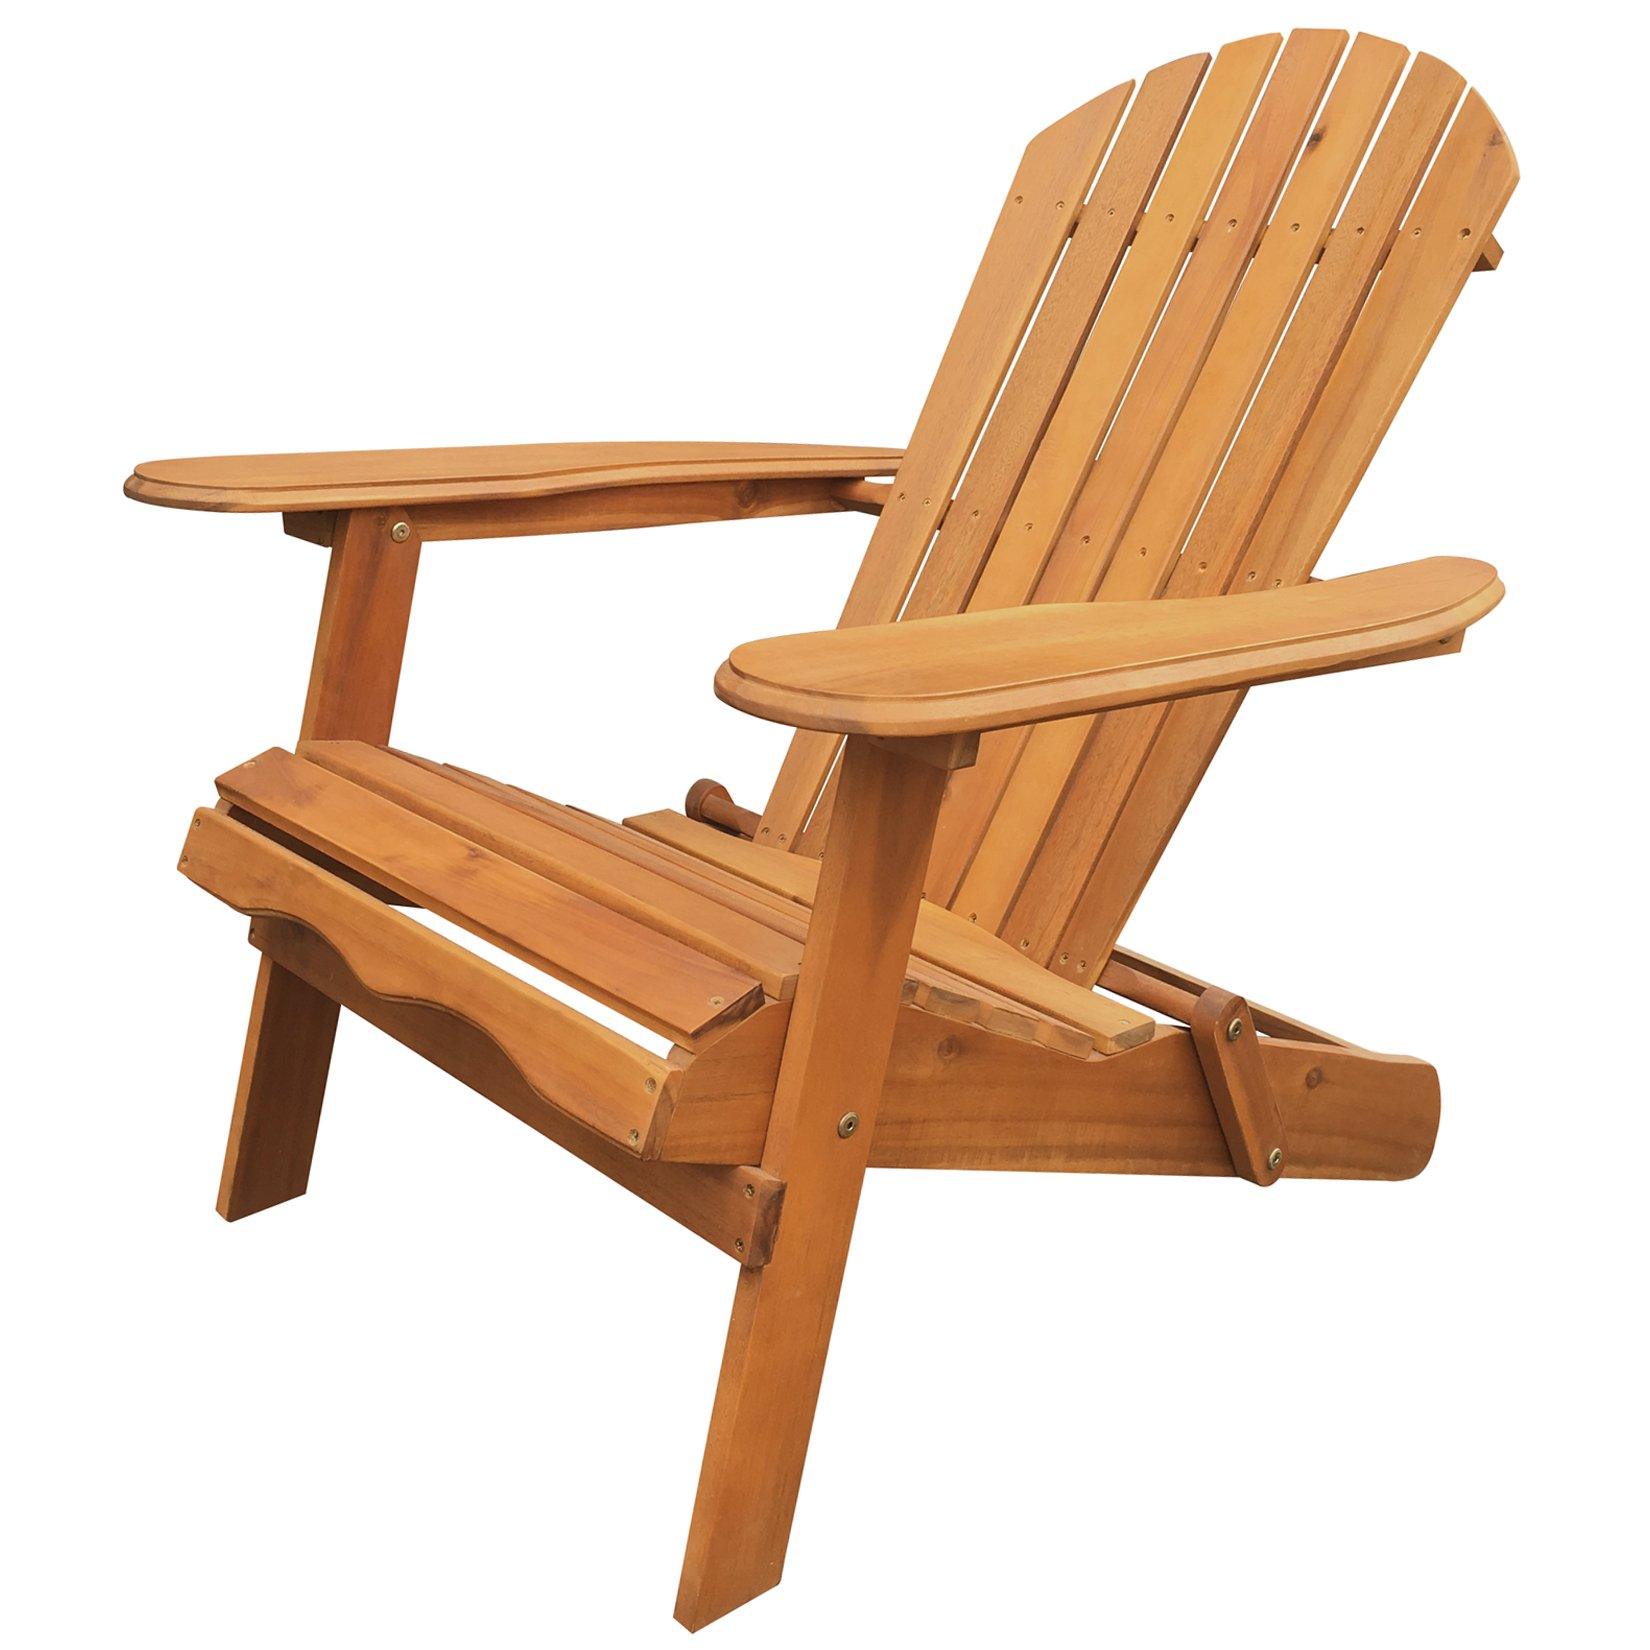 Leigh Country TX 36600 Folding Adirondack Chair Outdoor/Patio Furniture, Natural